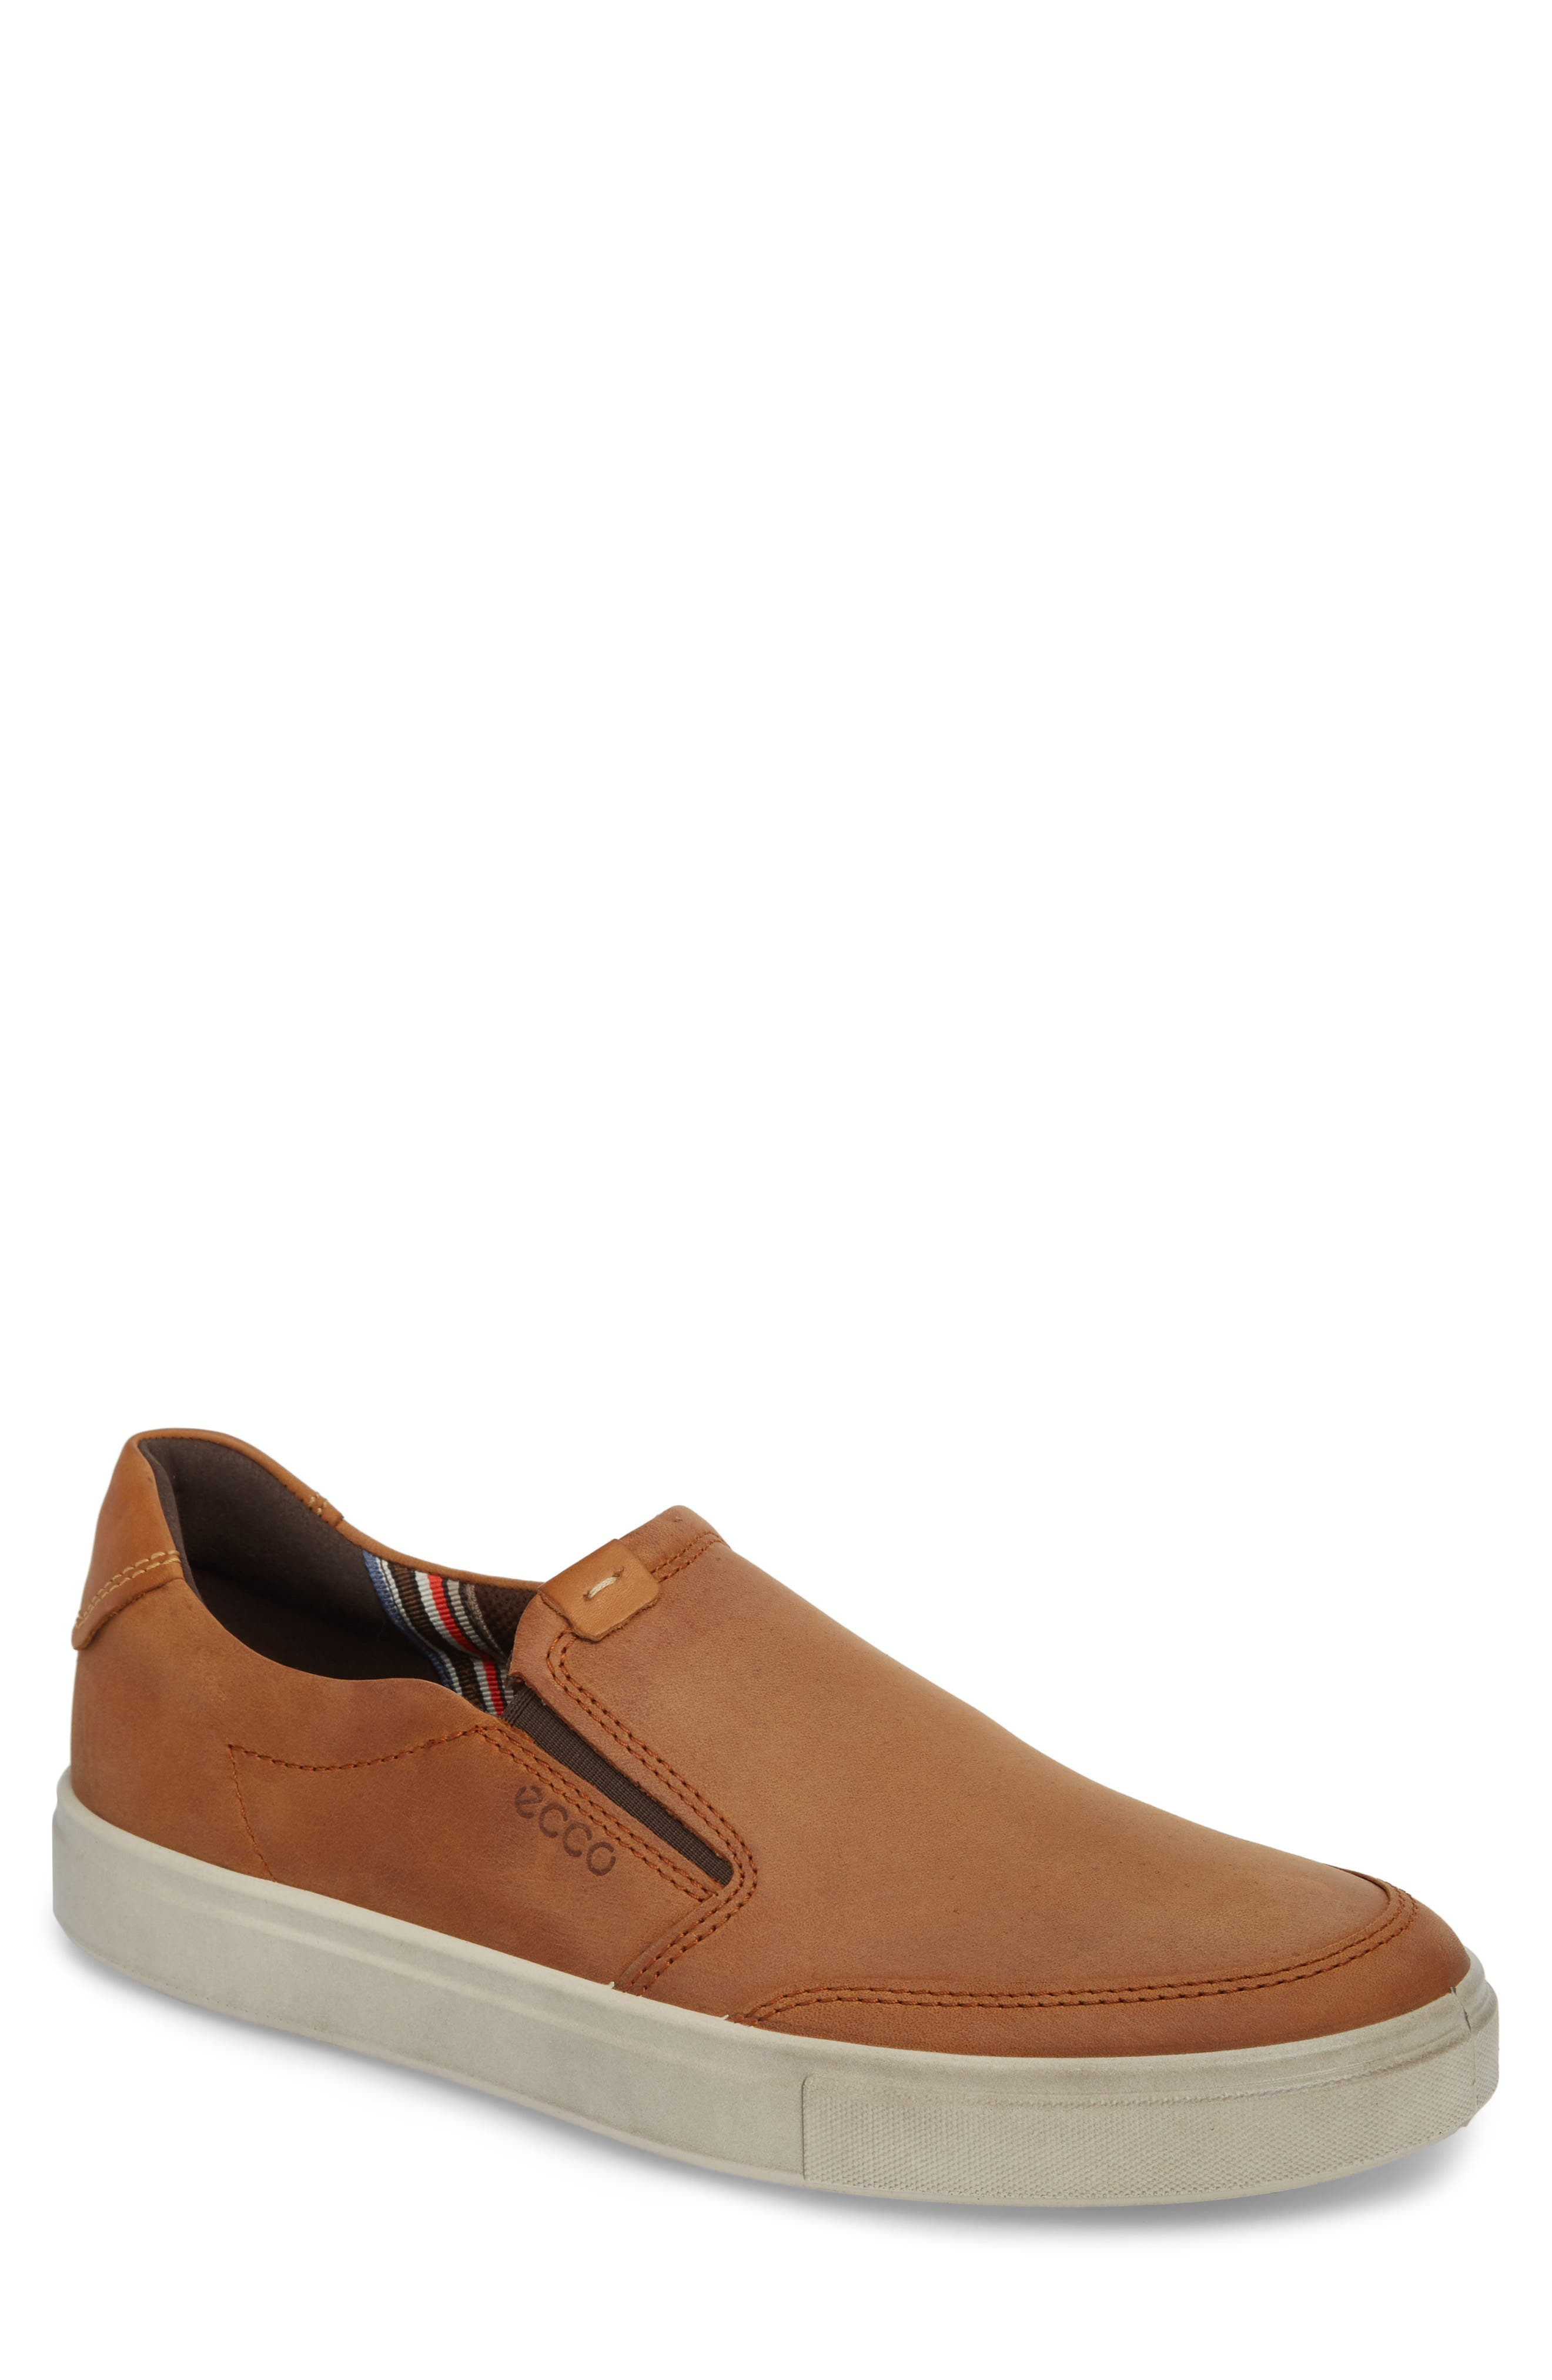 Kyle Slip-On,                             Main thumbnail 1, color,                             AMBER LEATHER